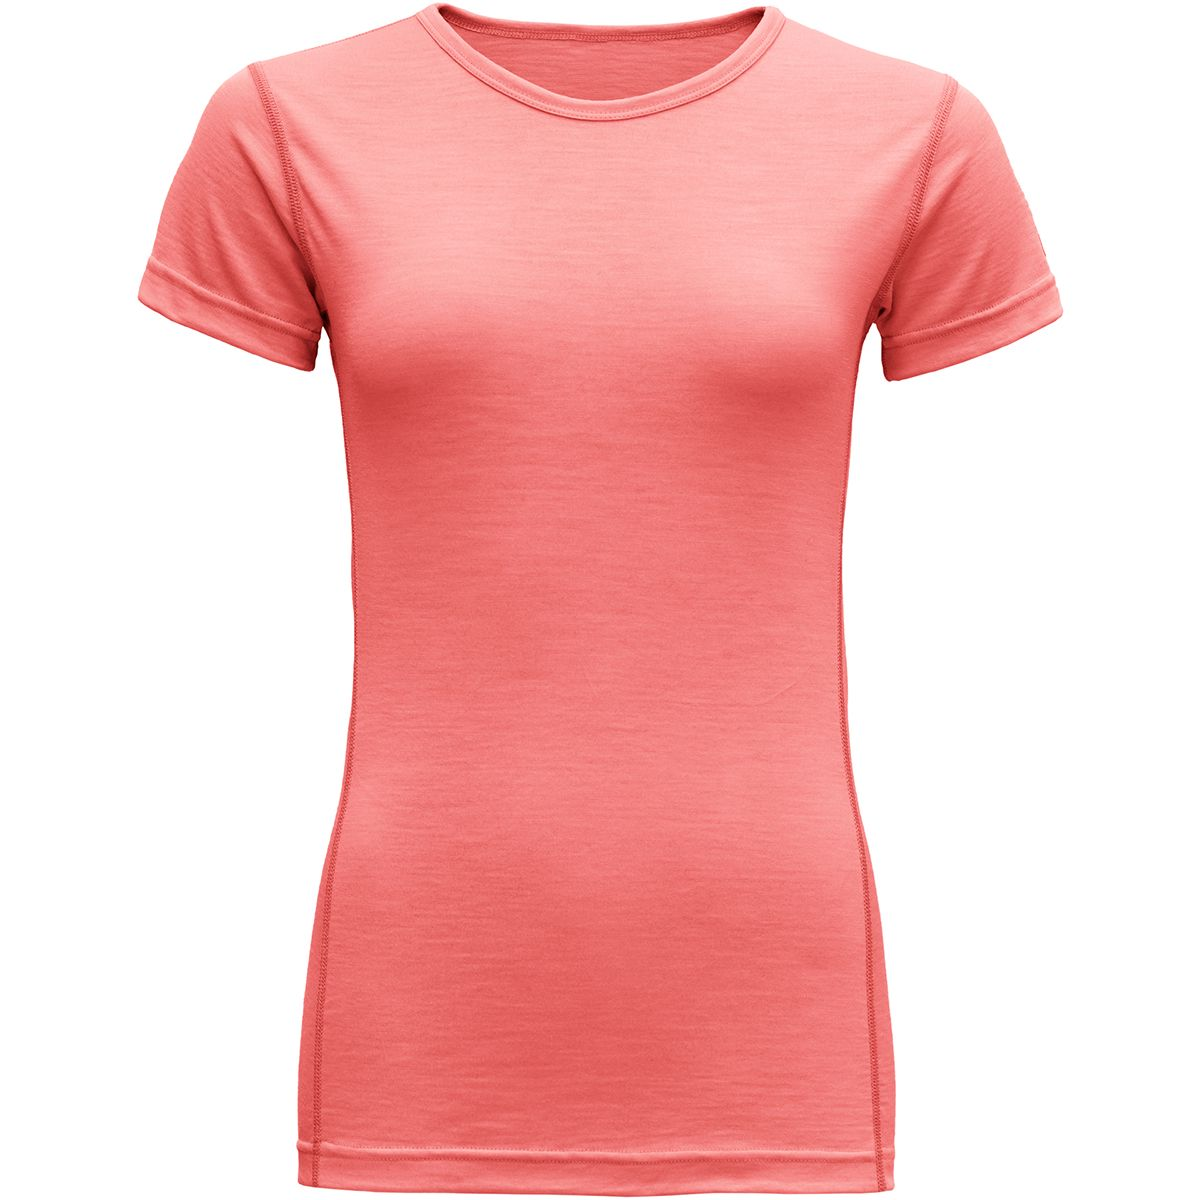 Devold Damen Breeze T-Shirt (Größe S, Orange) | Kurzarm Unterhemden > Damen